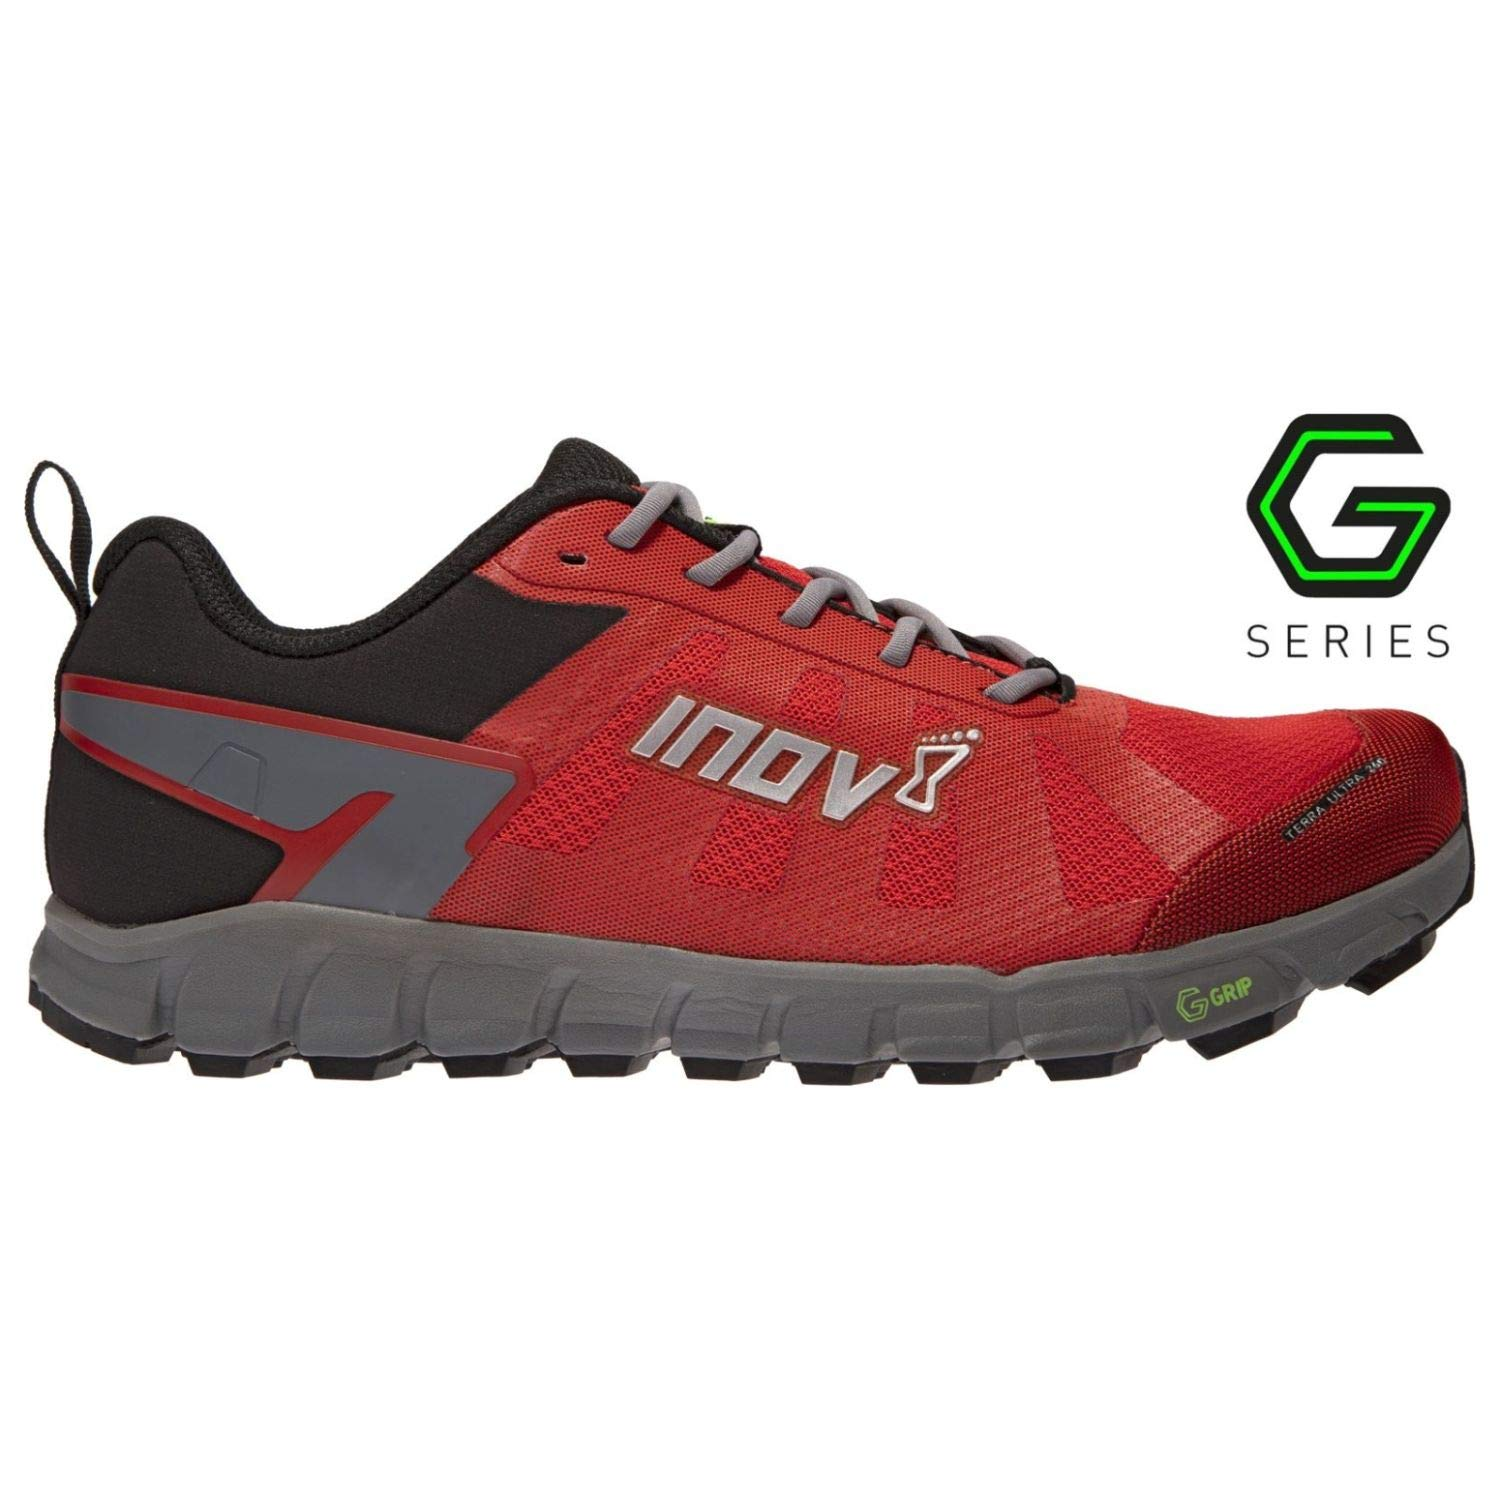 Inov-8 Womens Terraultra G 260 | Ultra Trail Running Shoe | Zero Drop | Perfect for Running Long Distances on Hard Trails and Paths | RED/Grey 10 W US by Inov-8